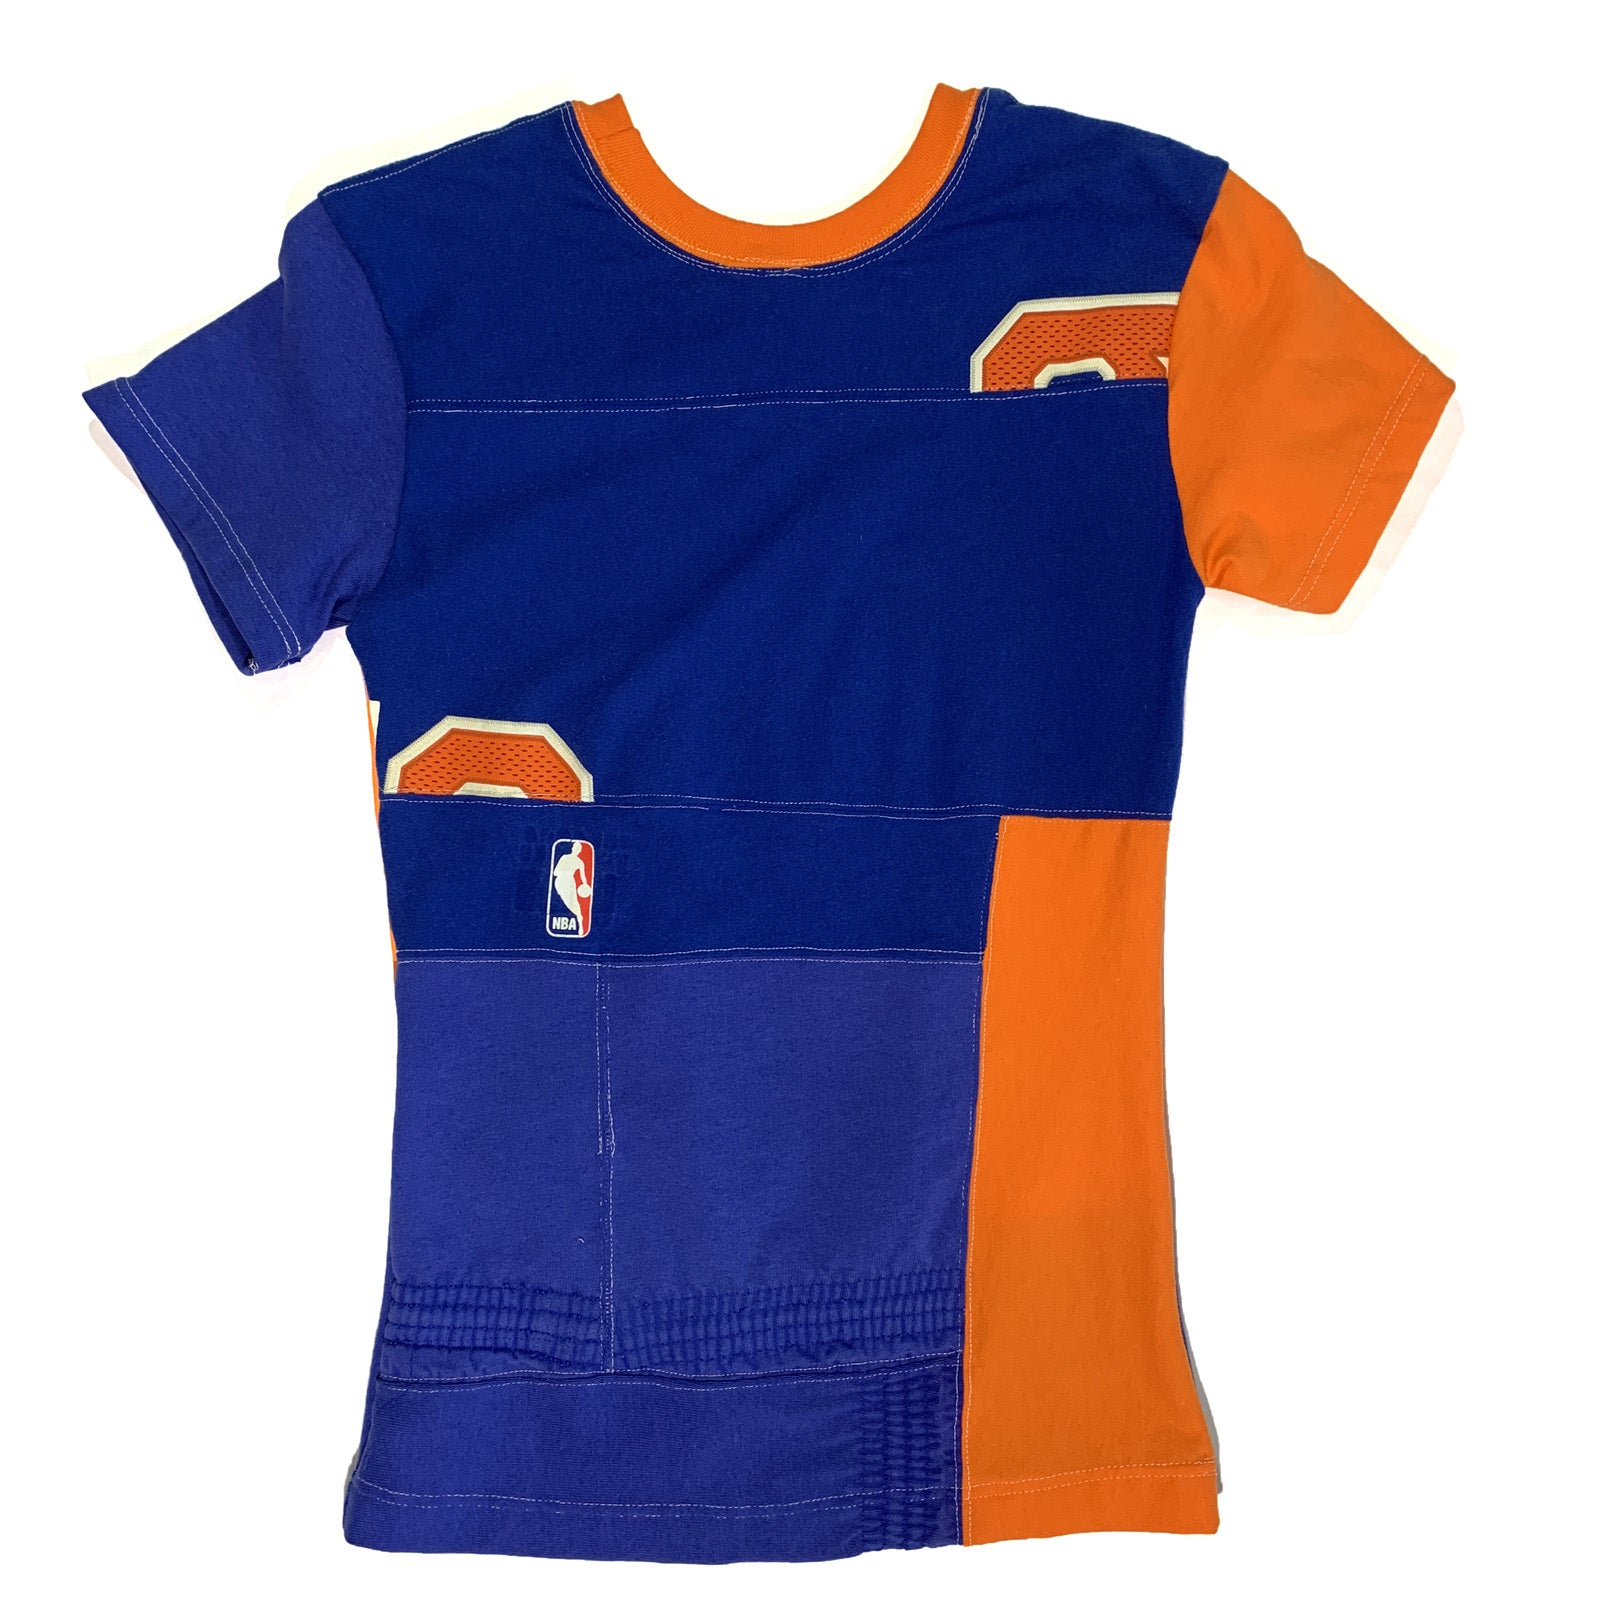 "BANDULU "" BLUE AND ORANGE "" CUT 'N SEW WOMEN'S TEE XS"